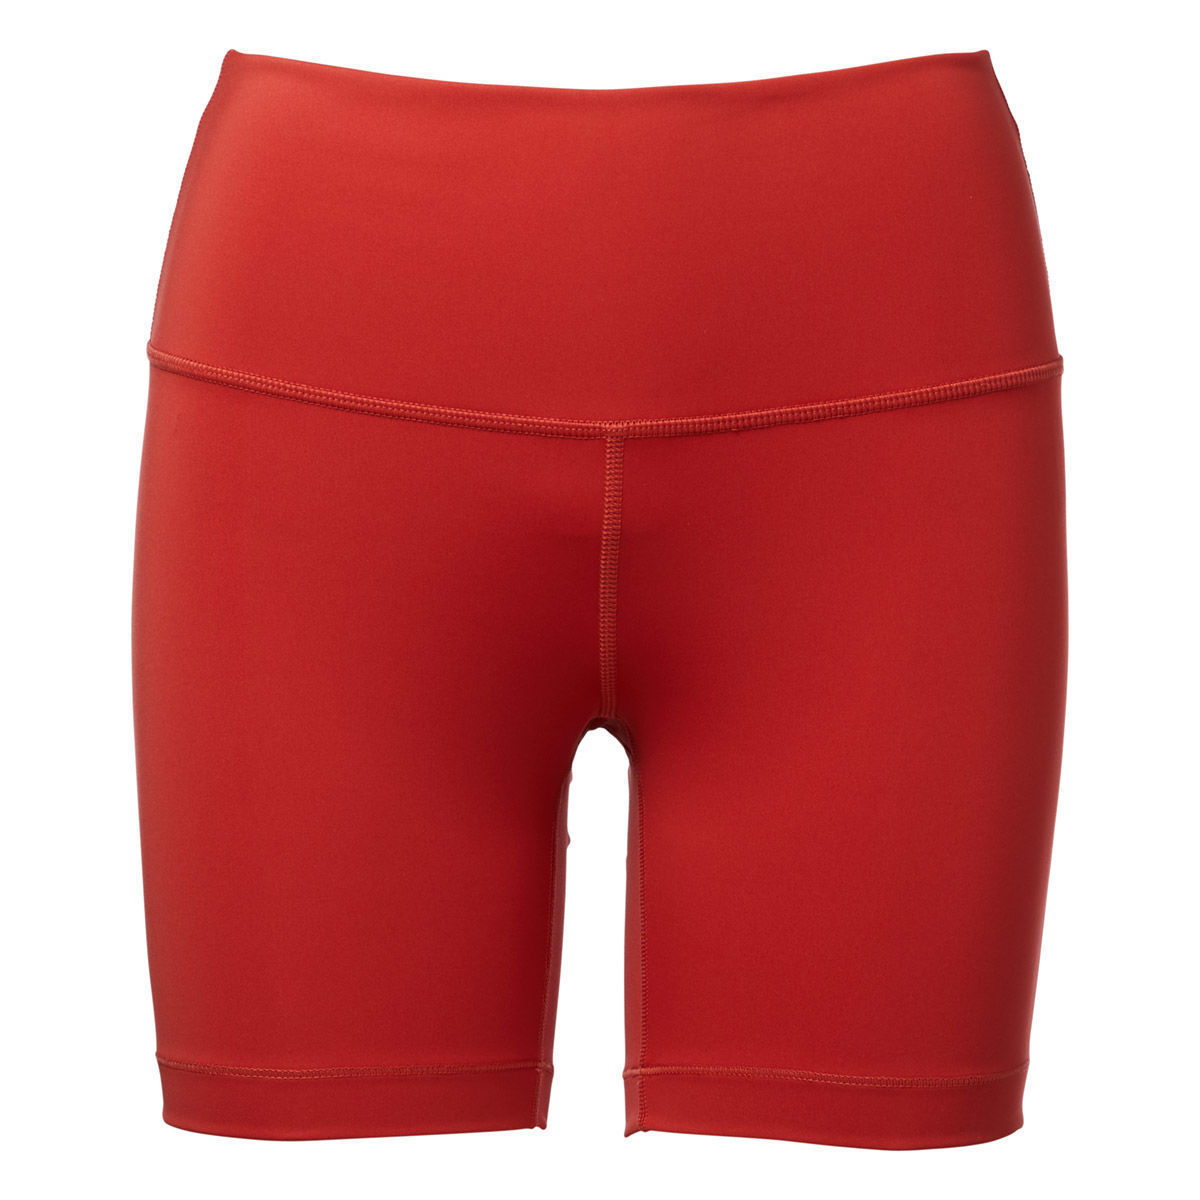 Picture of Mariposa Shorts - 2 Colors